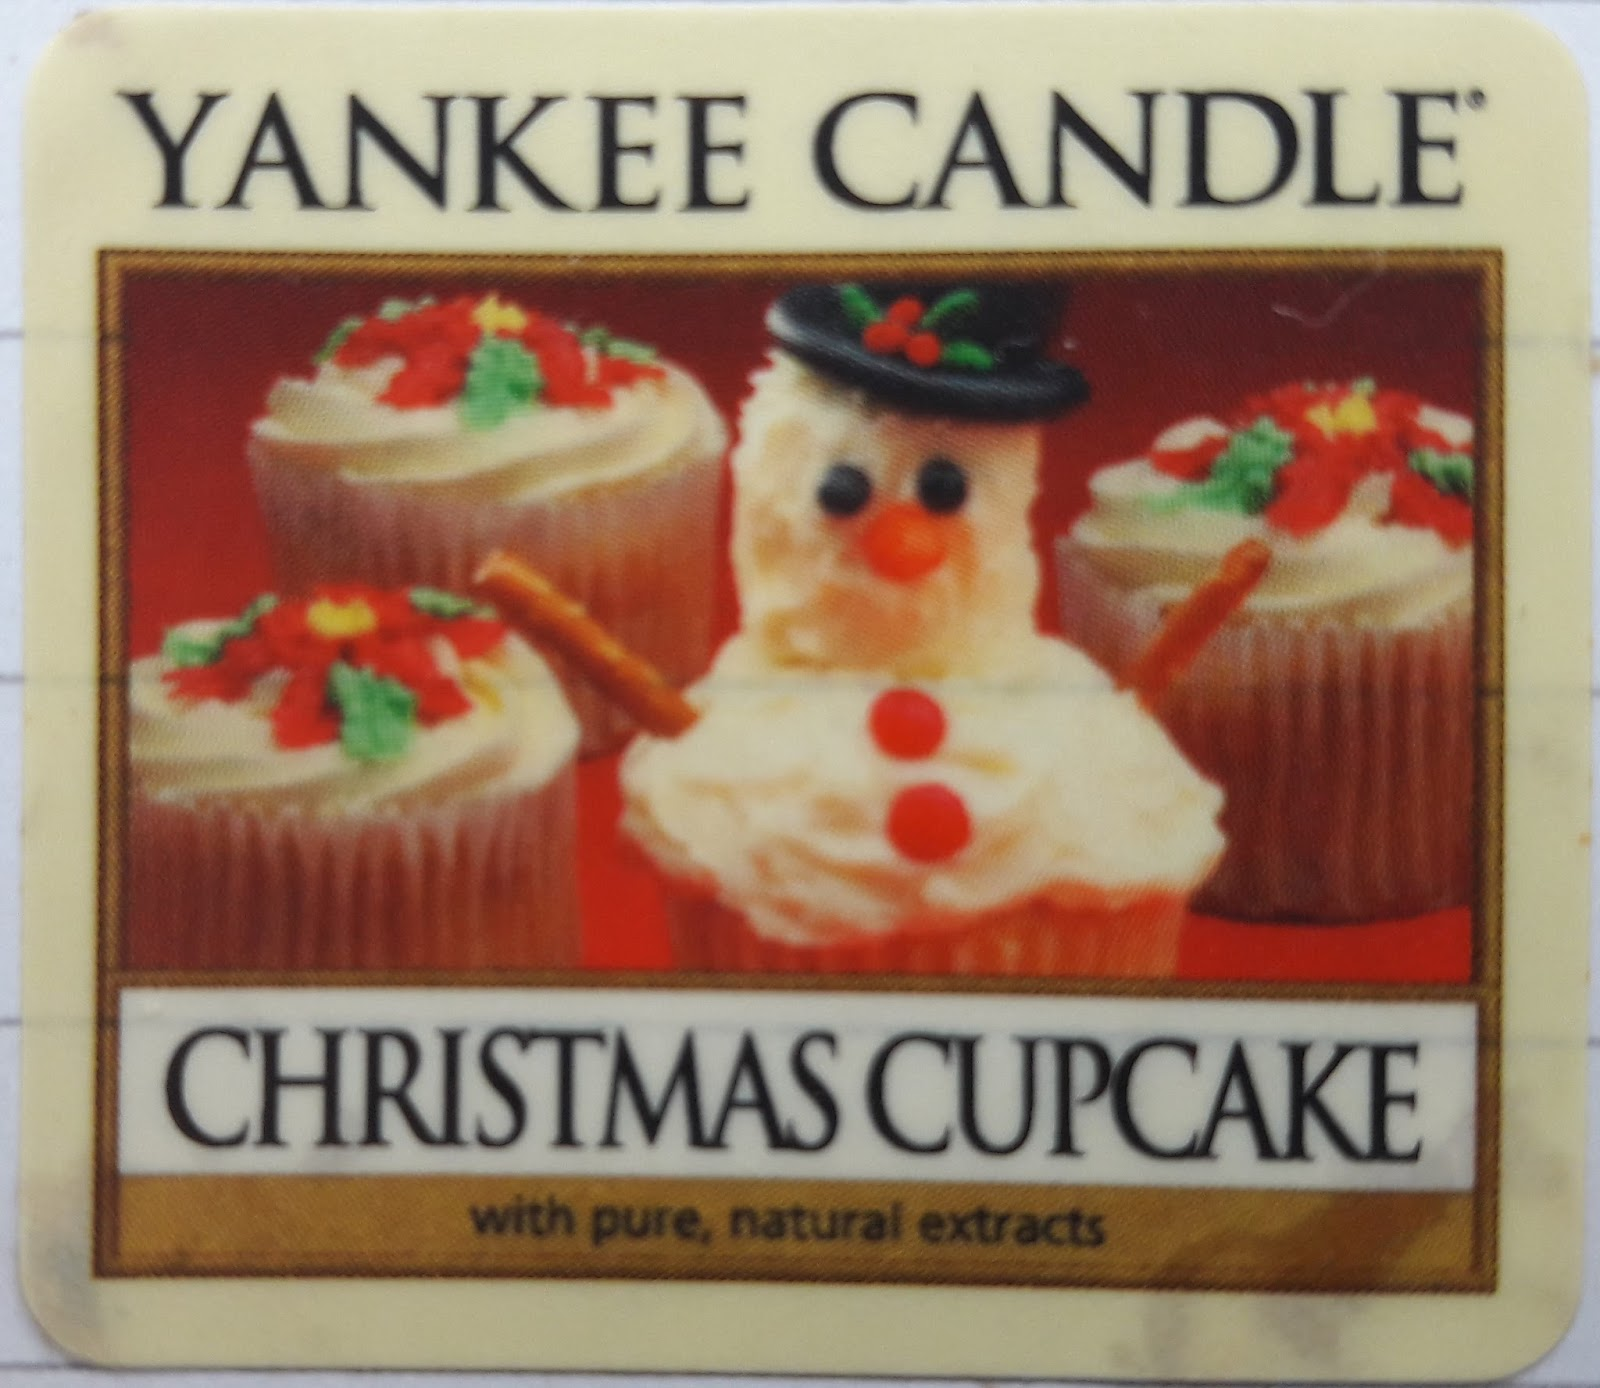 Pineapple Candles: Yankee Candle.Christmas Cupcake